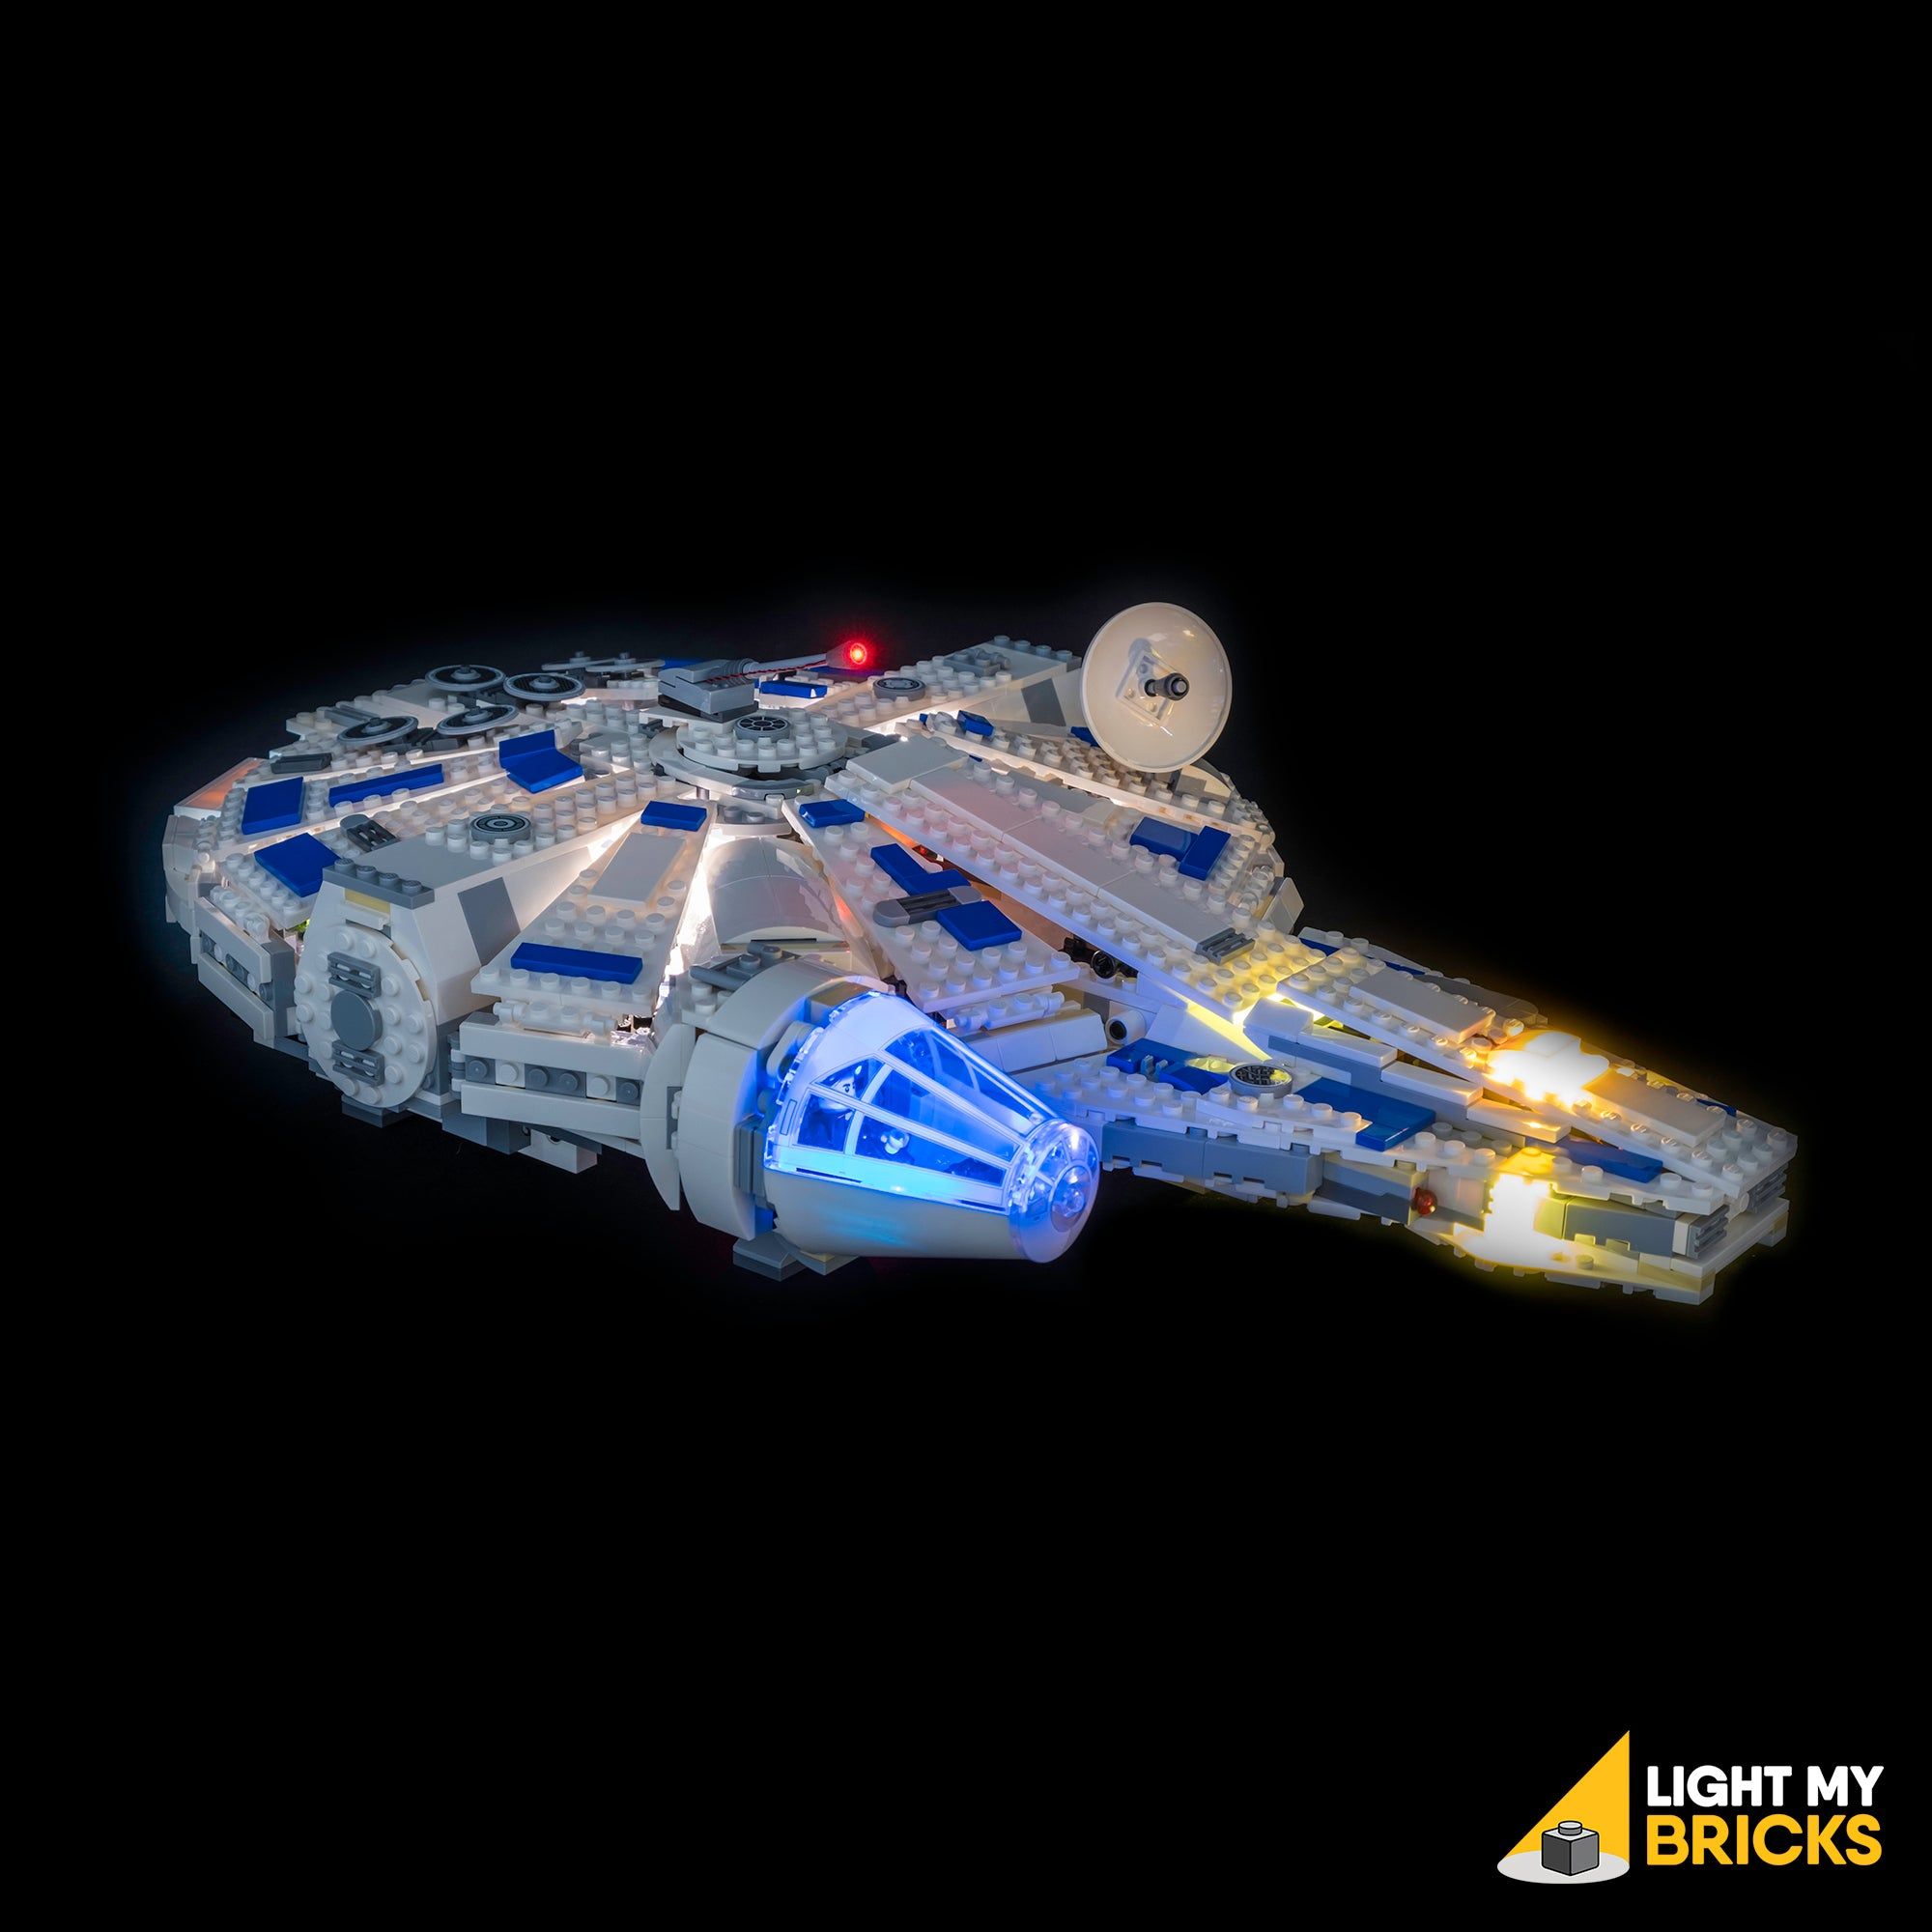 LEGO Kessel Run Millennium Falcon 75212 Review and Lighting Journal